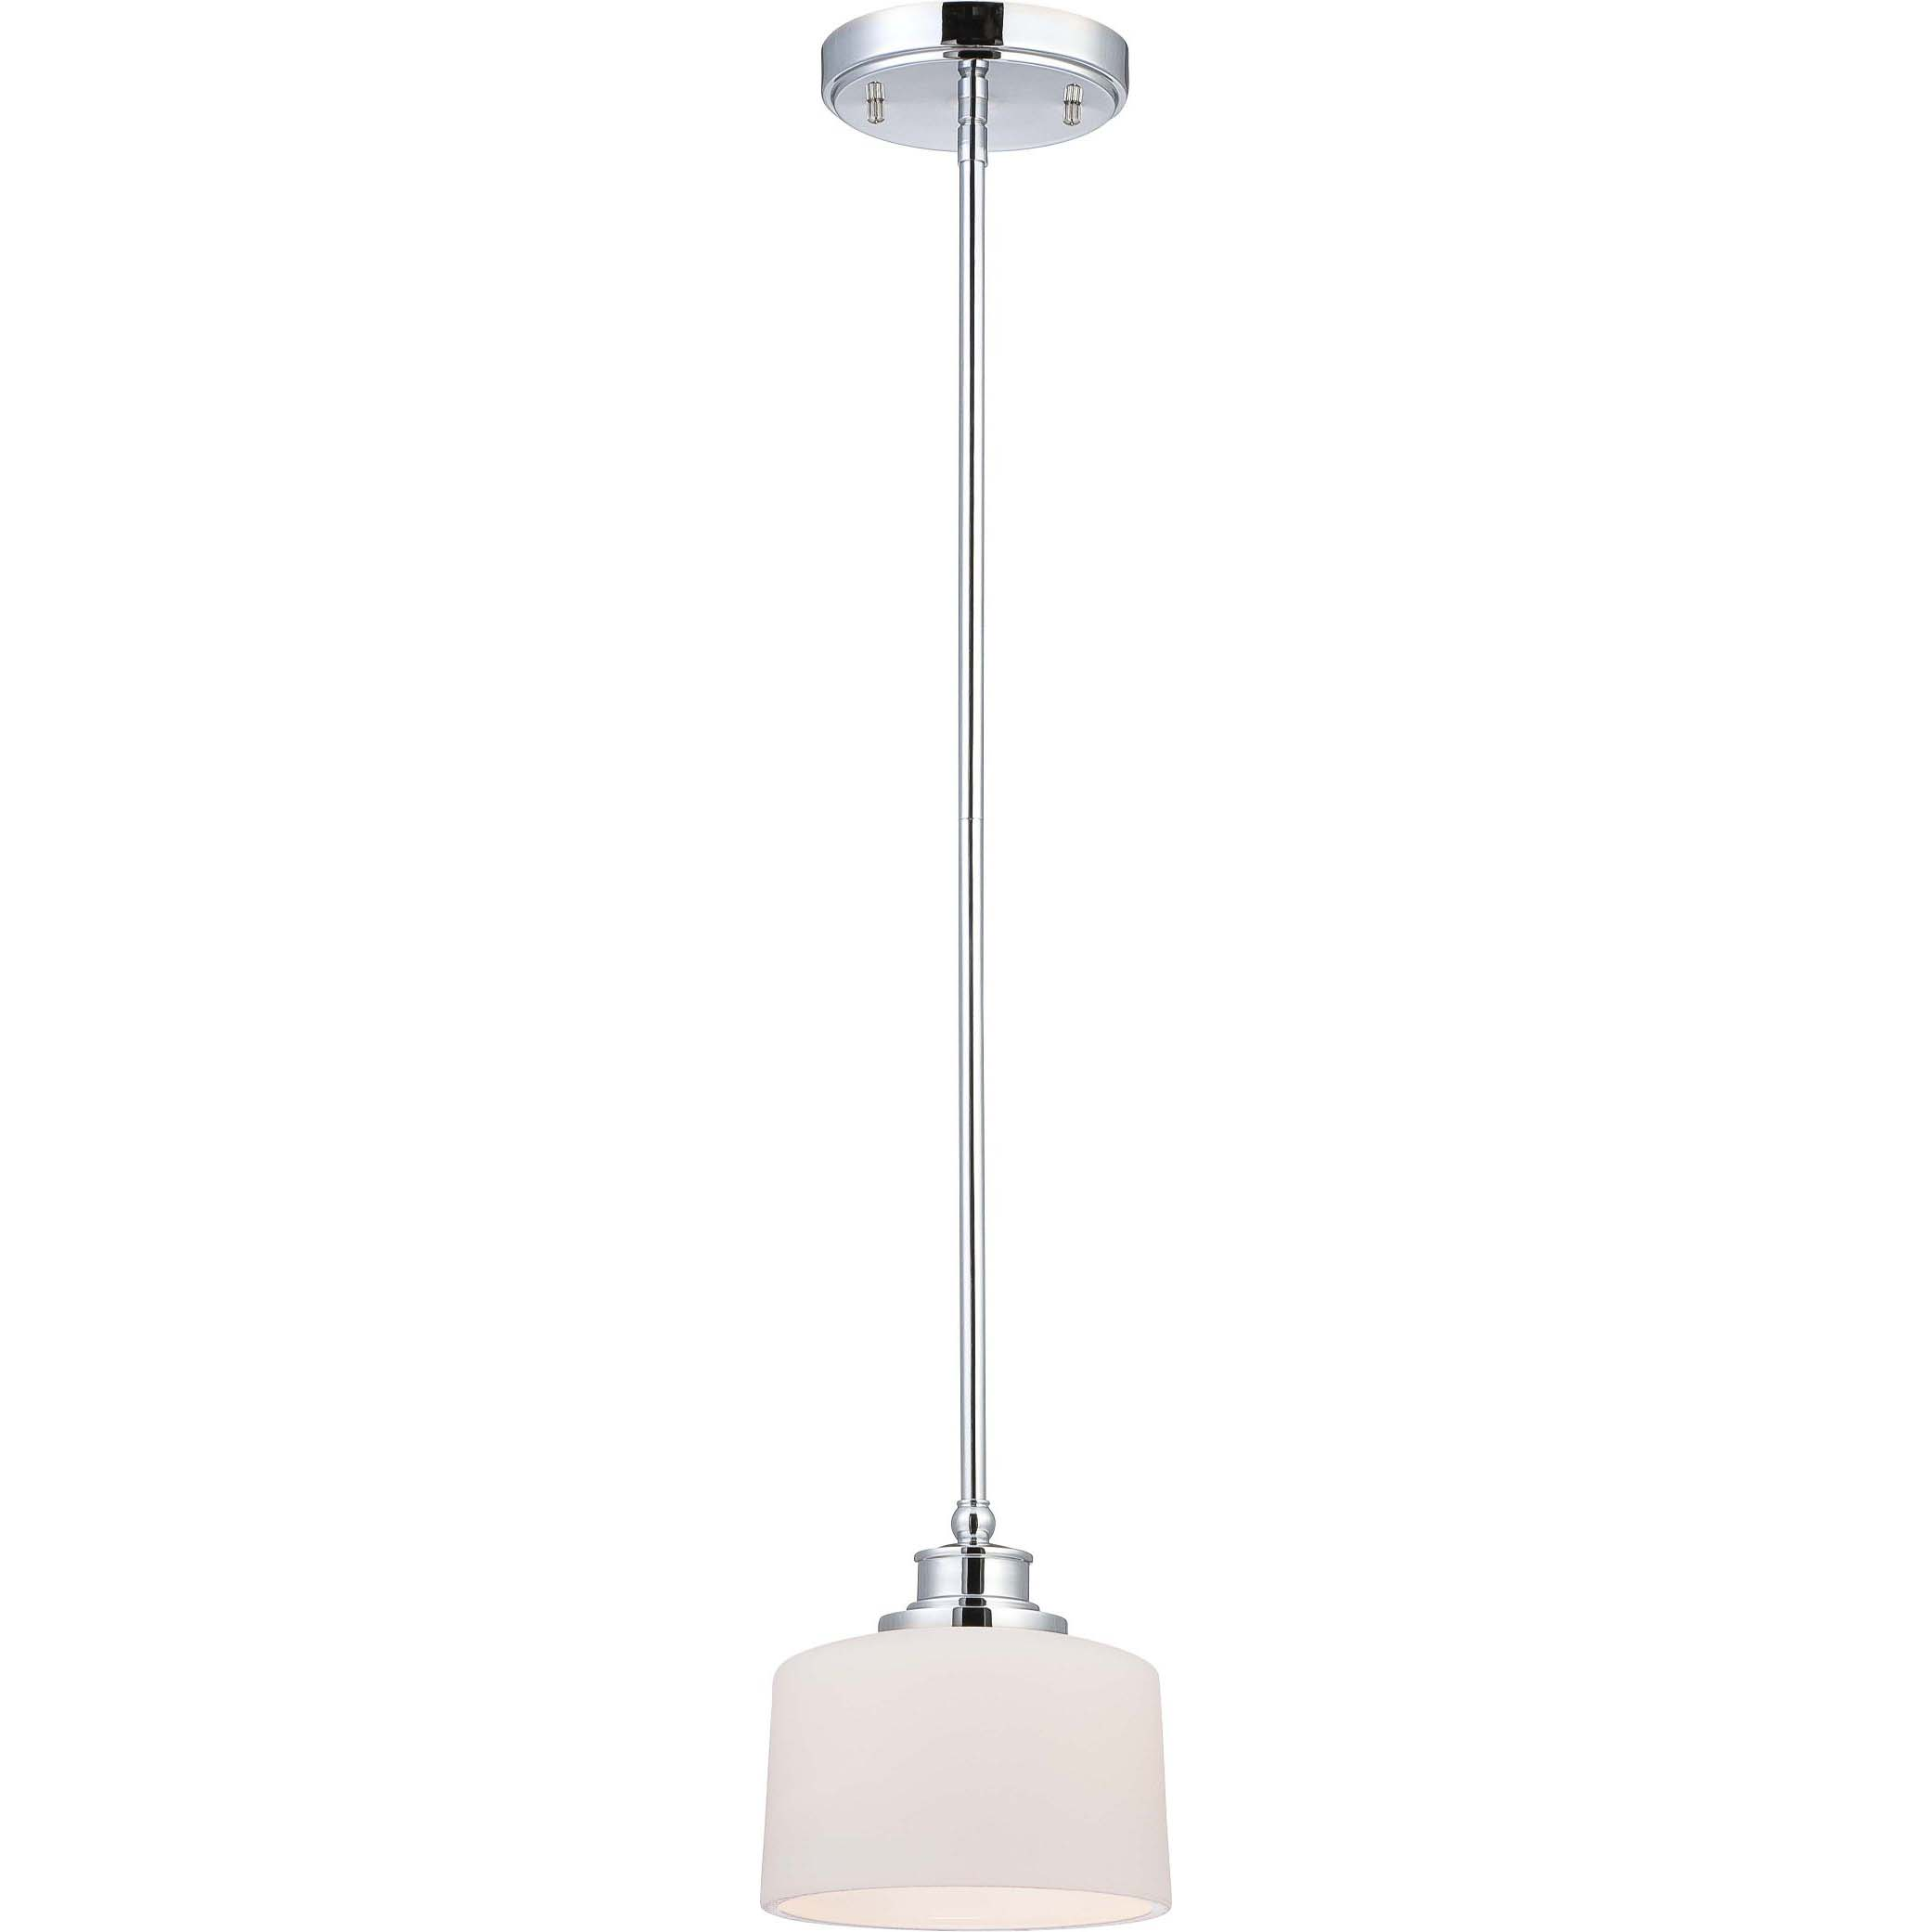 Soho 1 Light Polished Chrome With Satin White Glass Mini Pendant